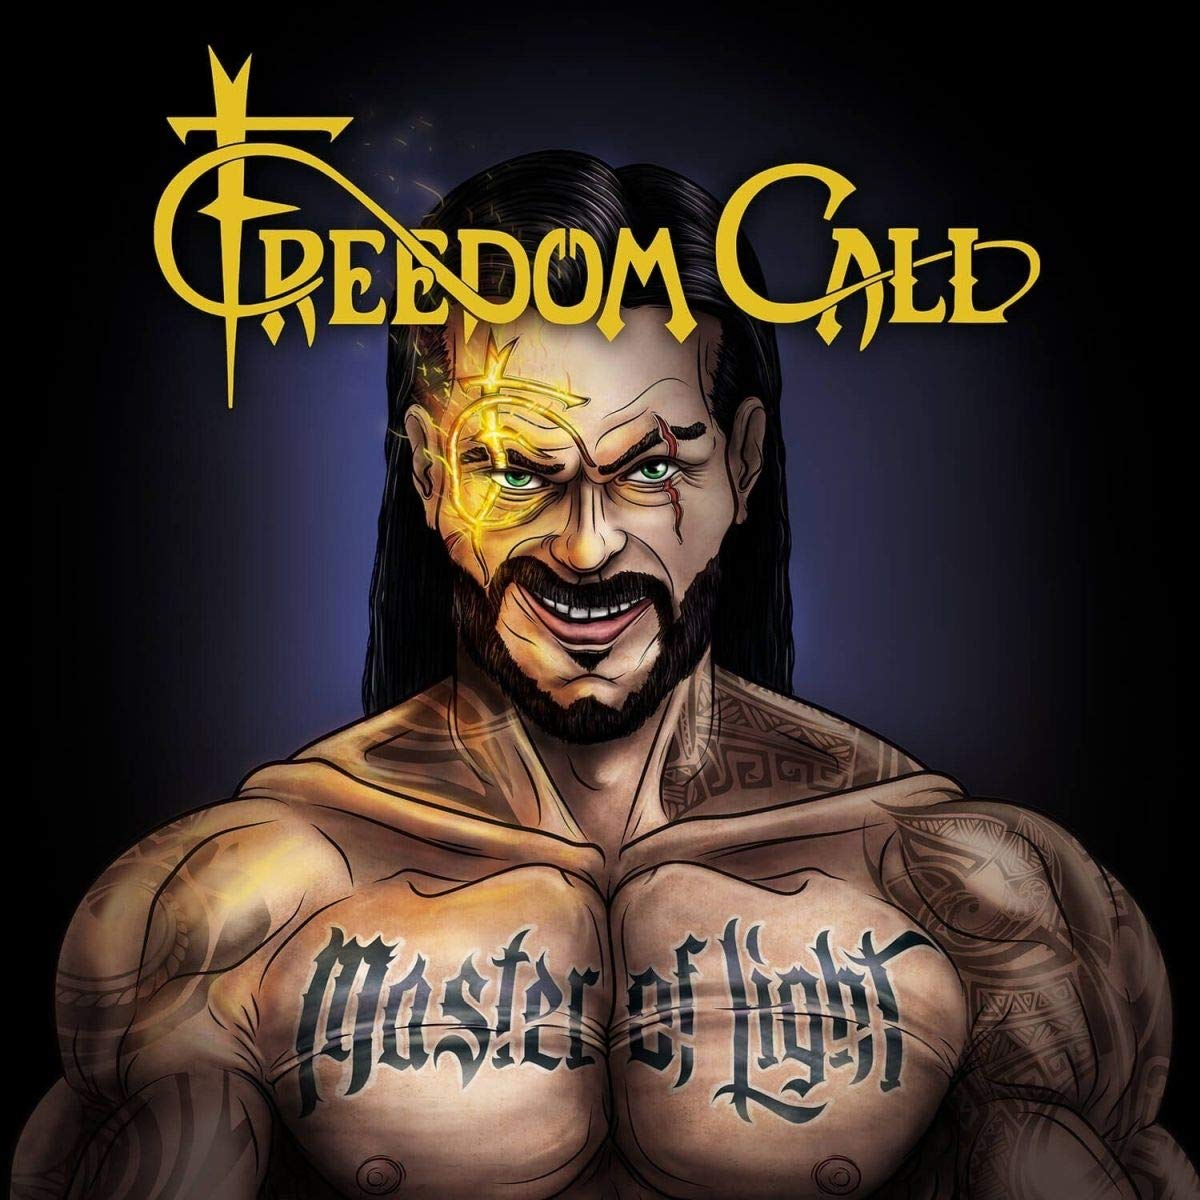 Freedom Call – Master Of Light (2016) [FLAC]